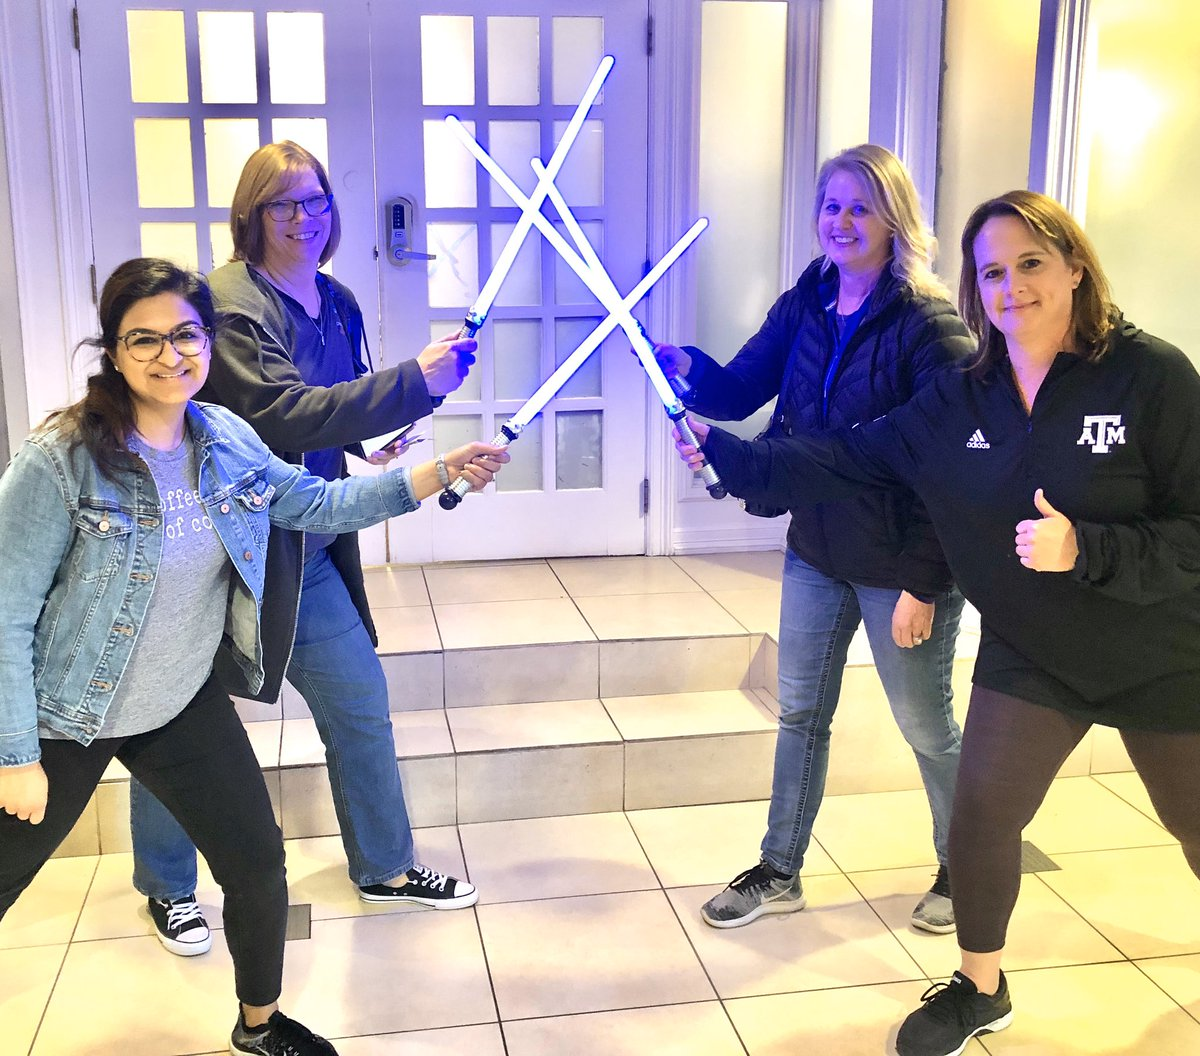 Ending the conference with the Force! @TCEA @CFBDLS @texasaggieamy @porterkarin @lkdelay #TCEA2020